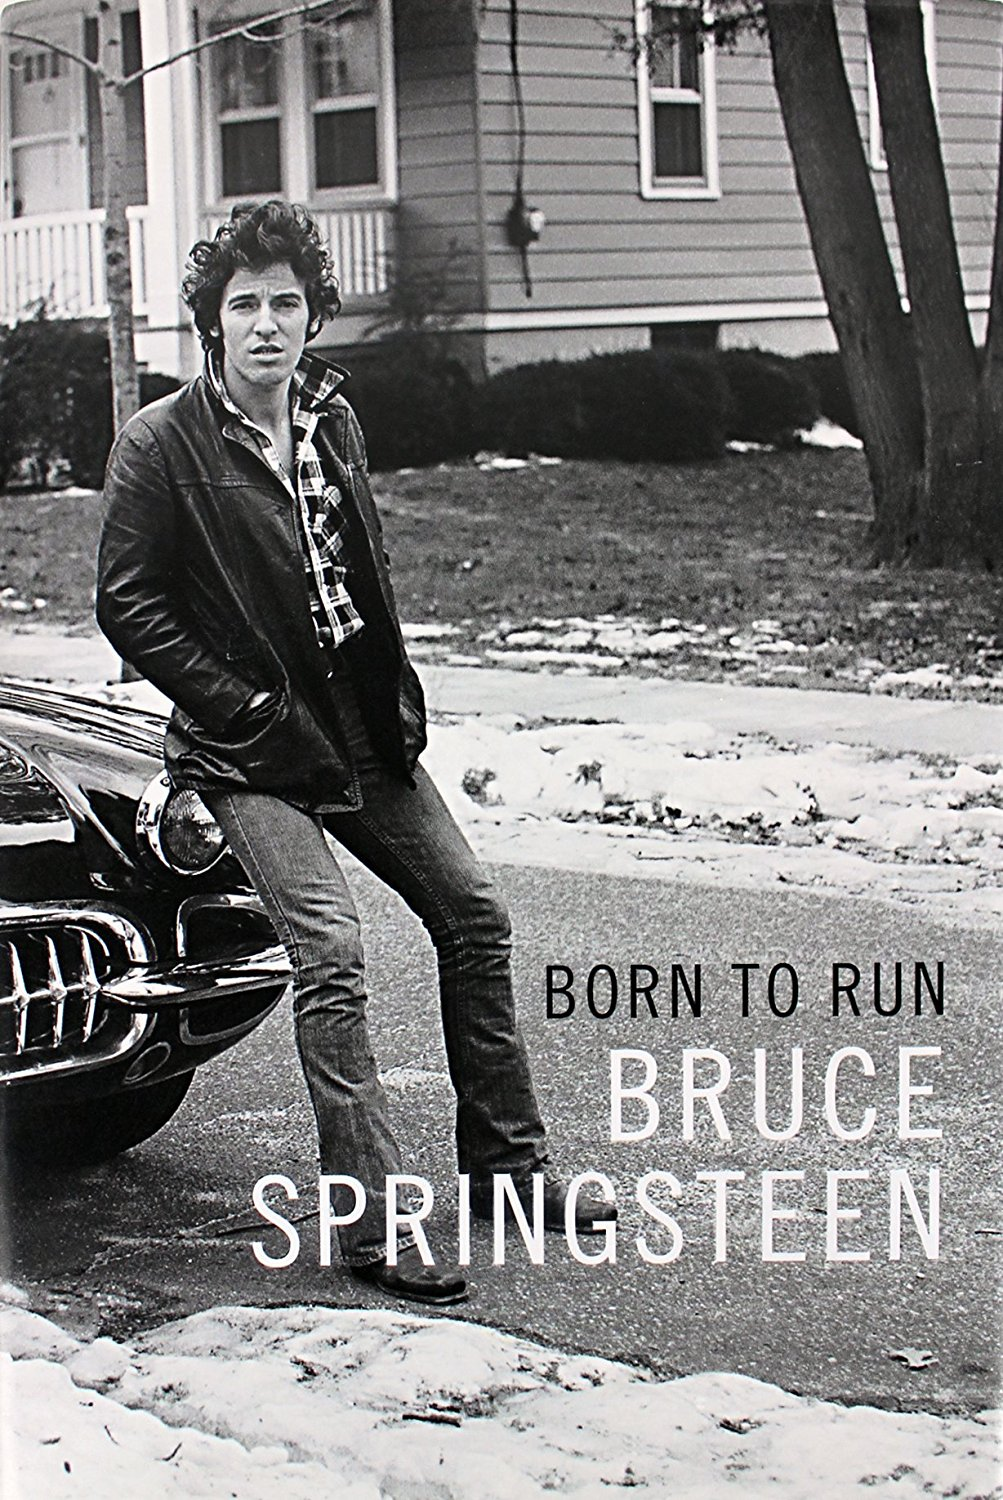 5 Books That Are Nominated for a Grammy Award in 2018: 5) Born to Run by Bruce Springsteen